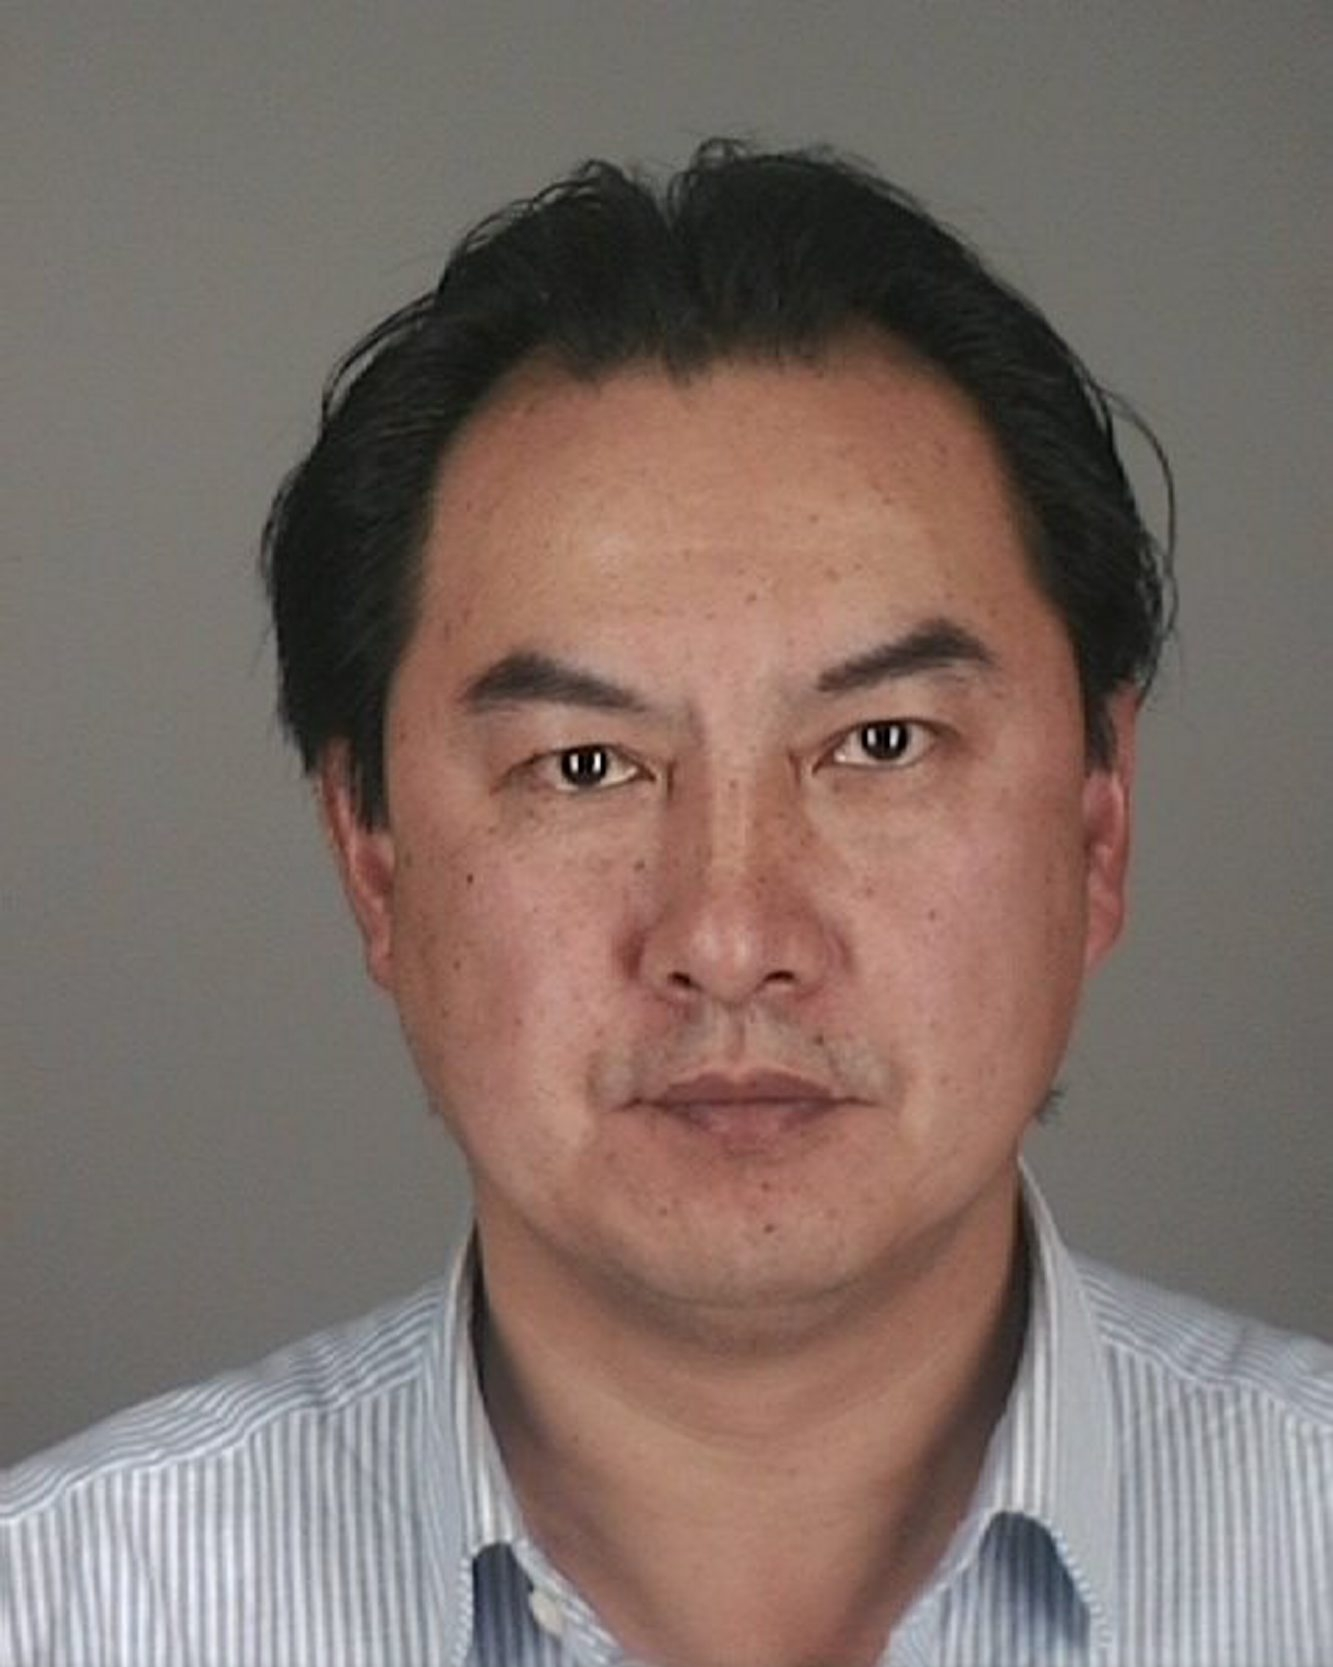 Jimmy Ying faces a felony charge.